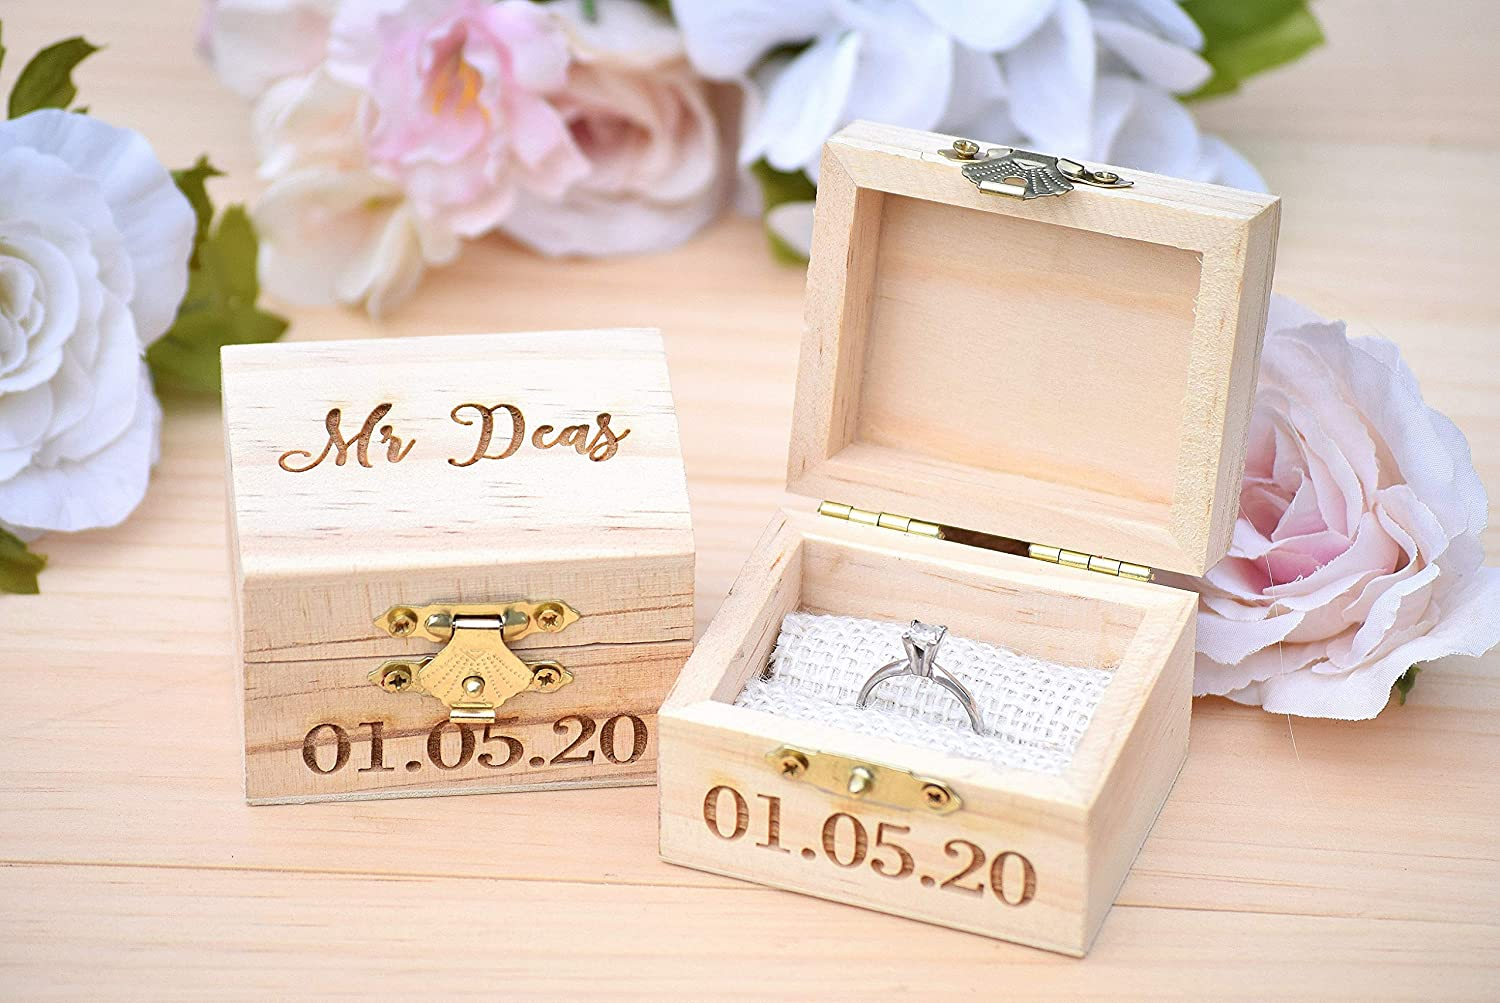 Personalized Mr and Mrs Ring Box Pillow Set Engraved Wedding Ring Box Wooden Ring Box Wedding Gift Ring Bearer Box Wooden Box Bridal Shower Gift